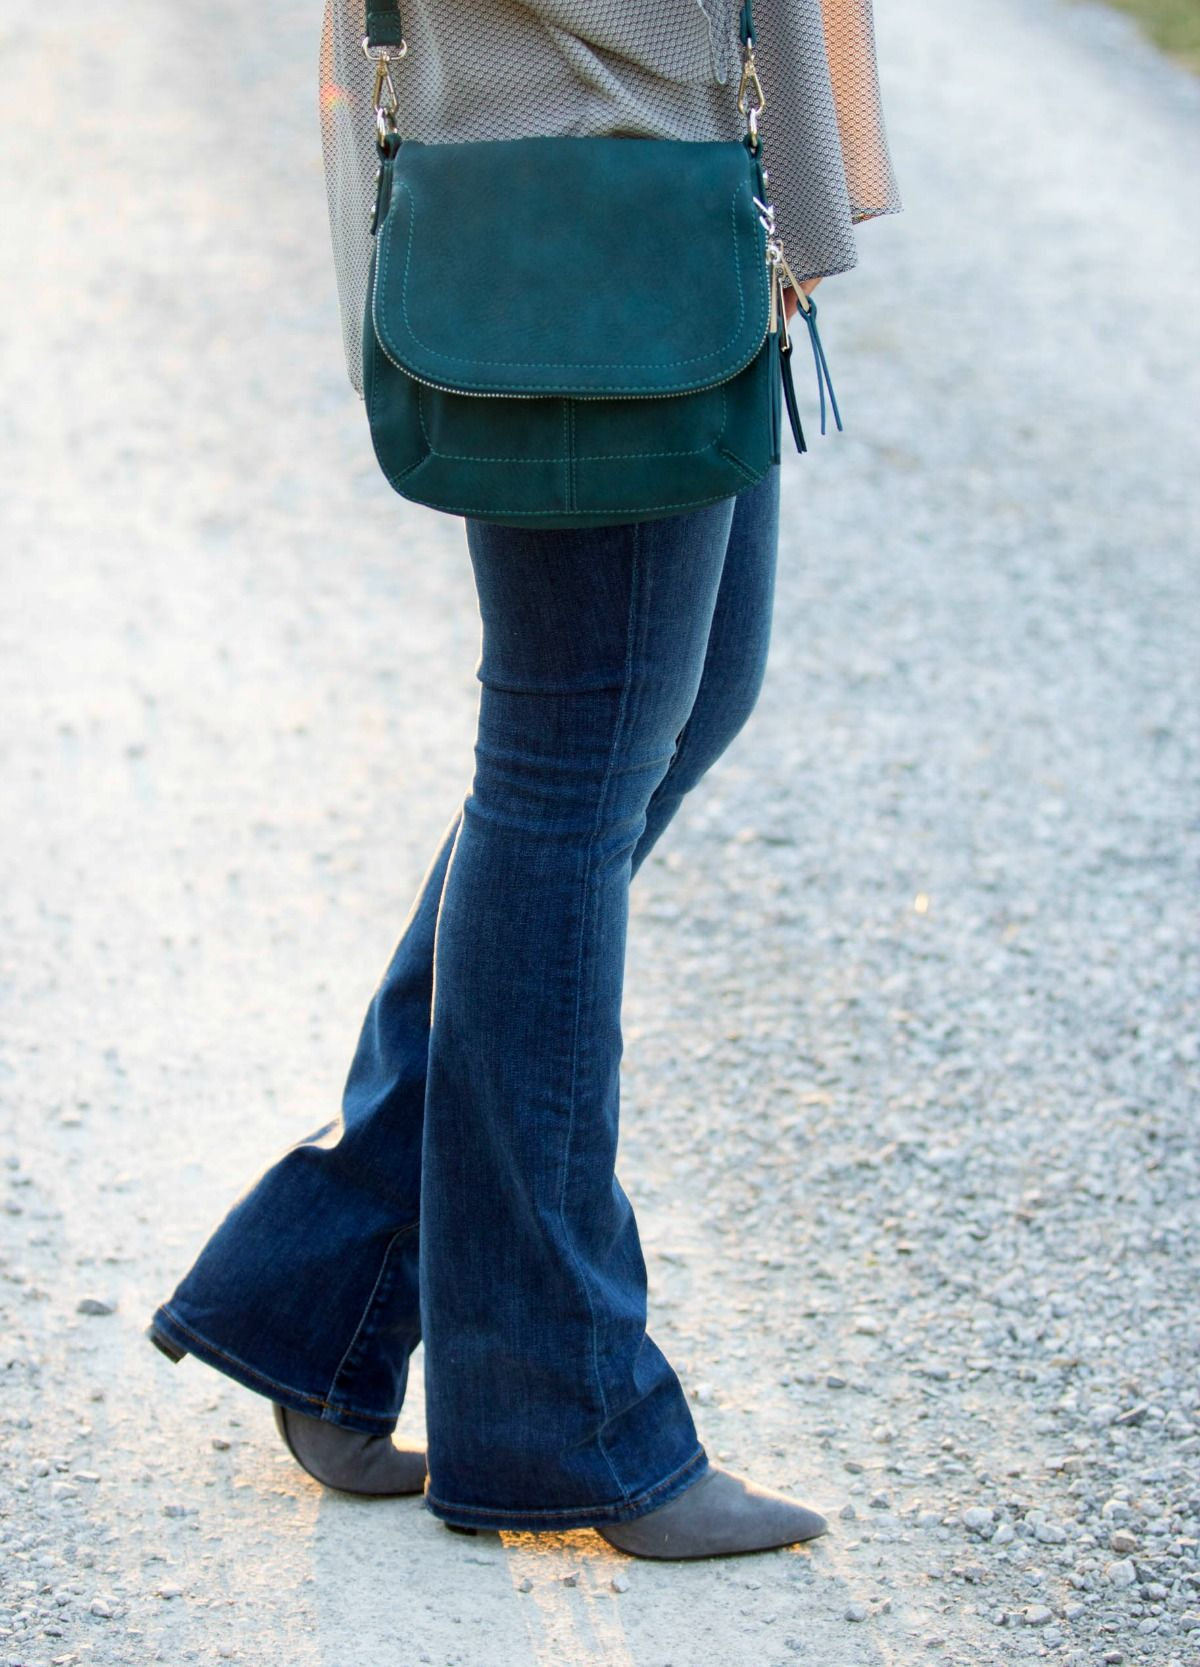 how to take in jeans at the ankle